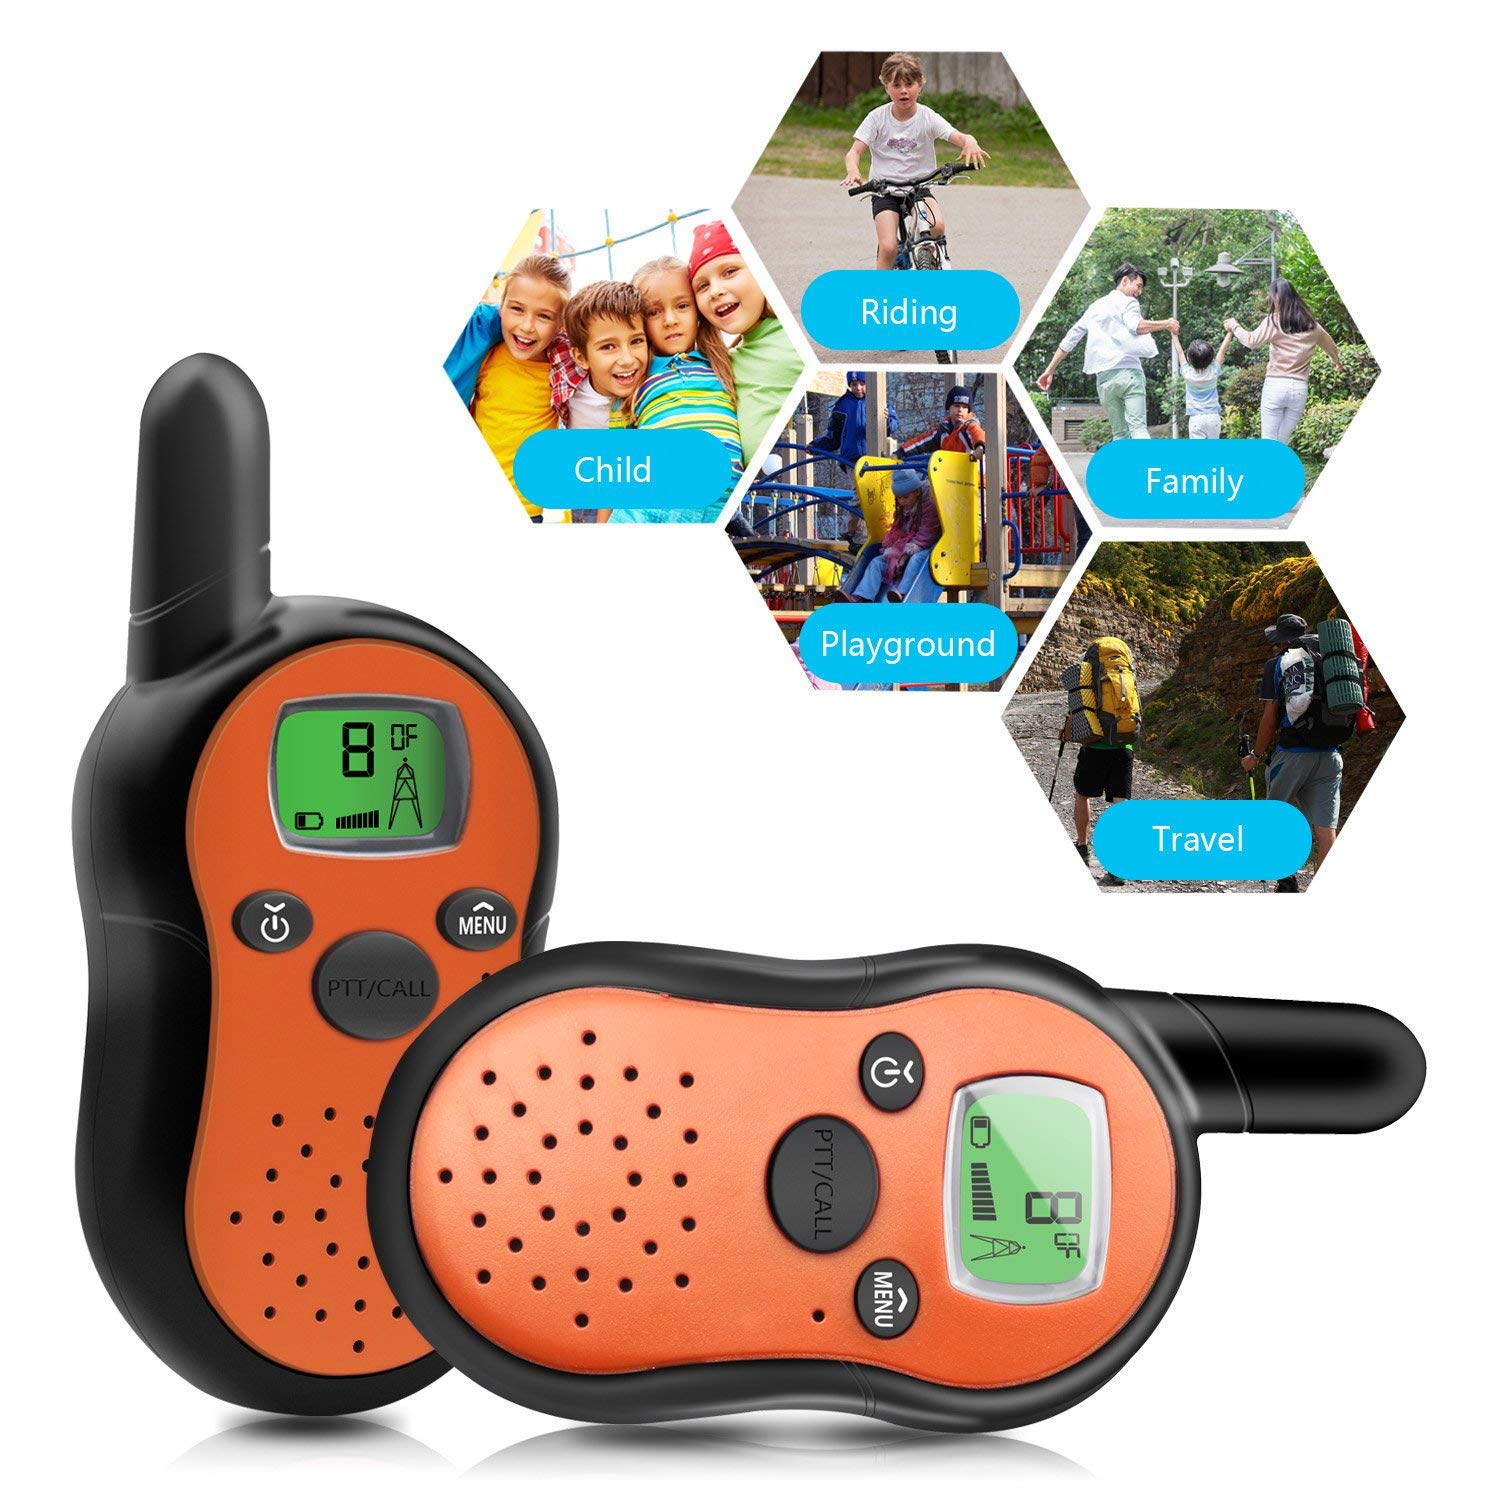 TiMi Tree Walkie Talkies for Kids Toddlers Two Way Radios Toy Voice Activated Long Range, Outdoor Exploration Gifts for Age 5 6 7 Year Old Boys Girls by TiMi Tree (Image #5)